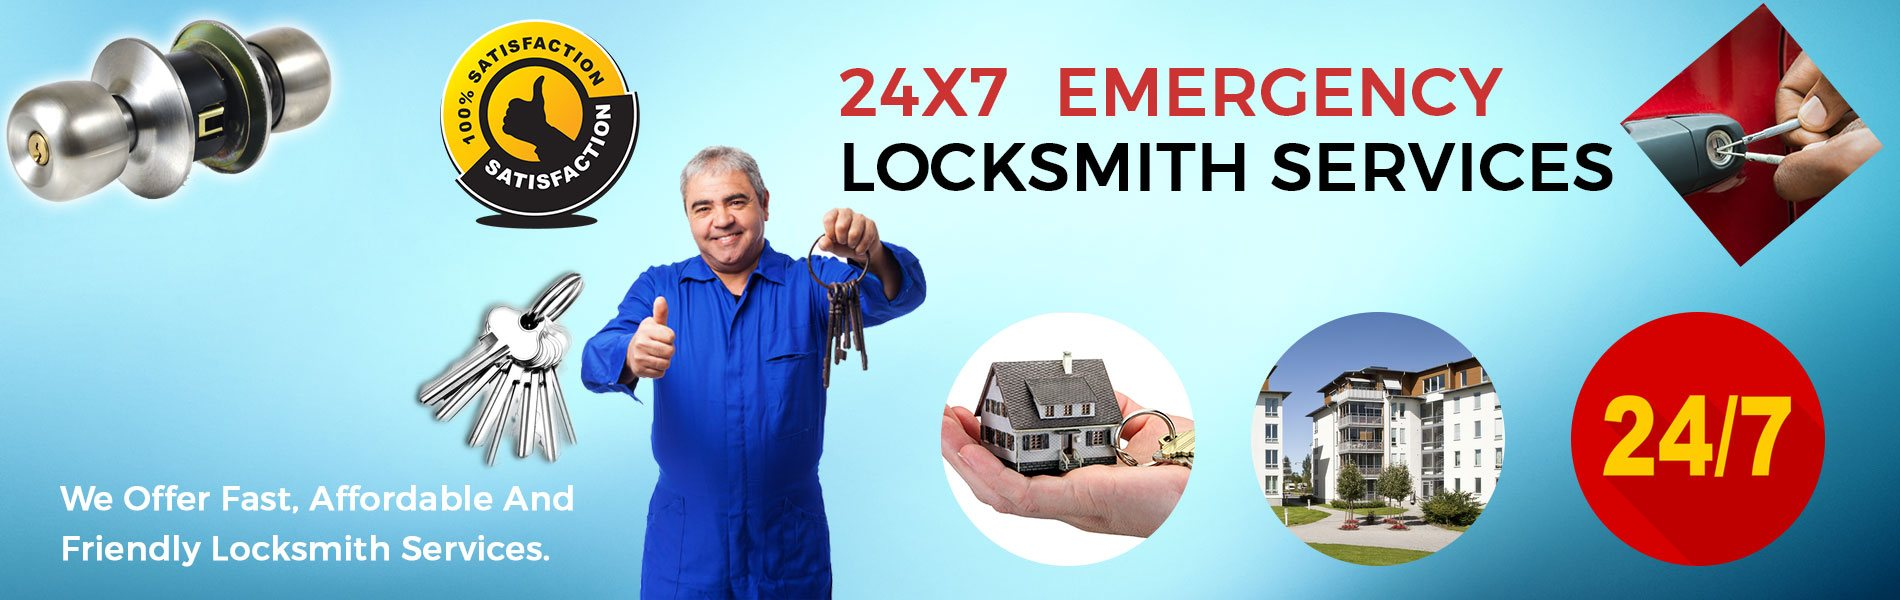 Stamford Lock And Key, Stamford, CT 203-533-3125